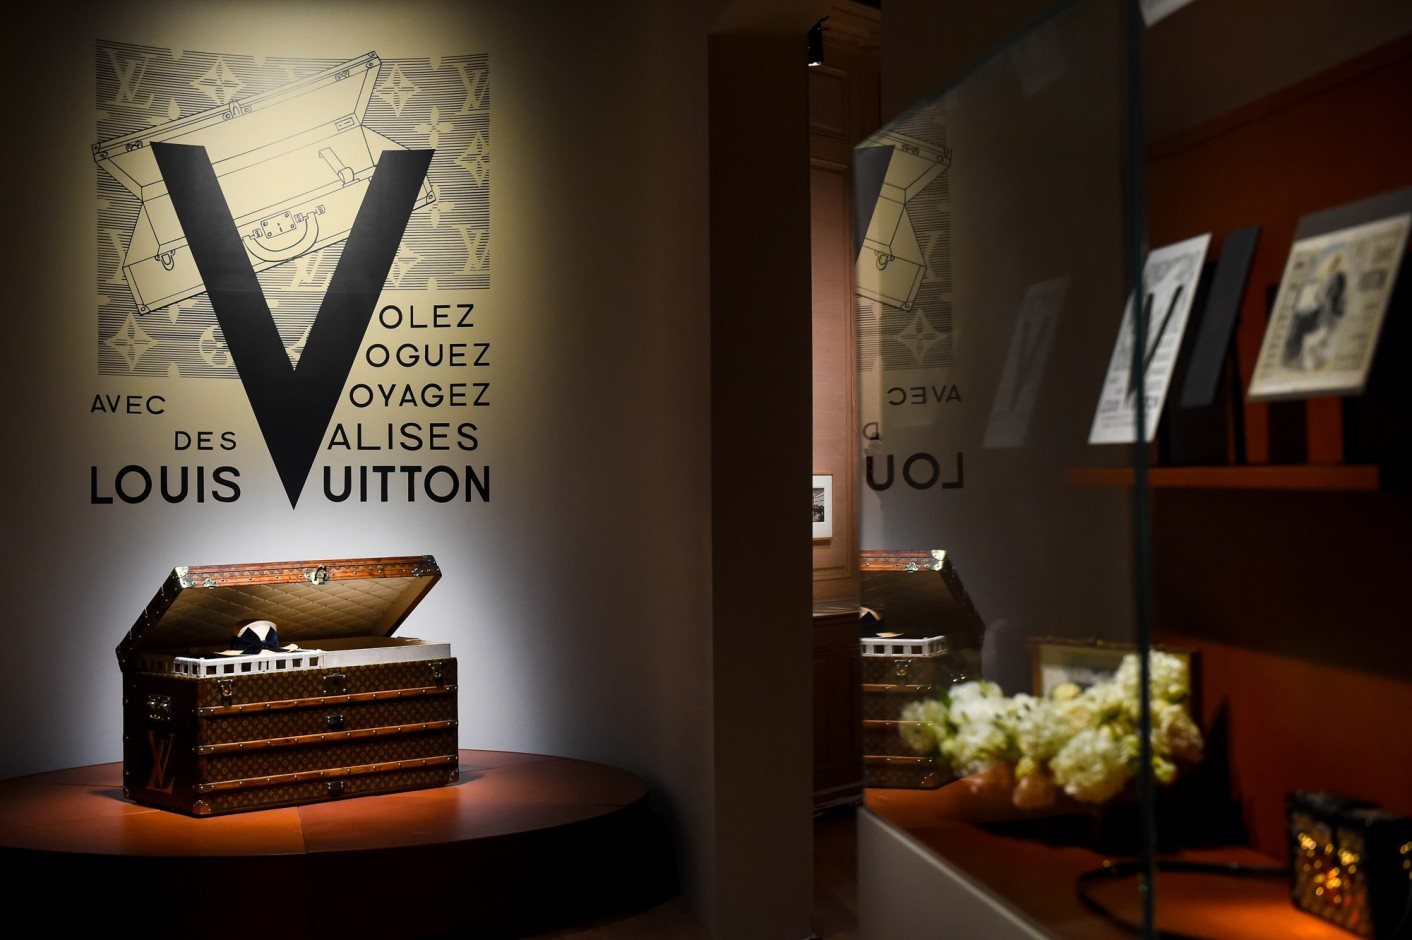 louis-vuitton-volez-voguez-voyagez-exhibition-new-york-15